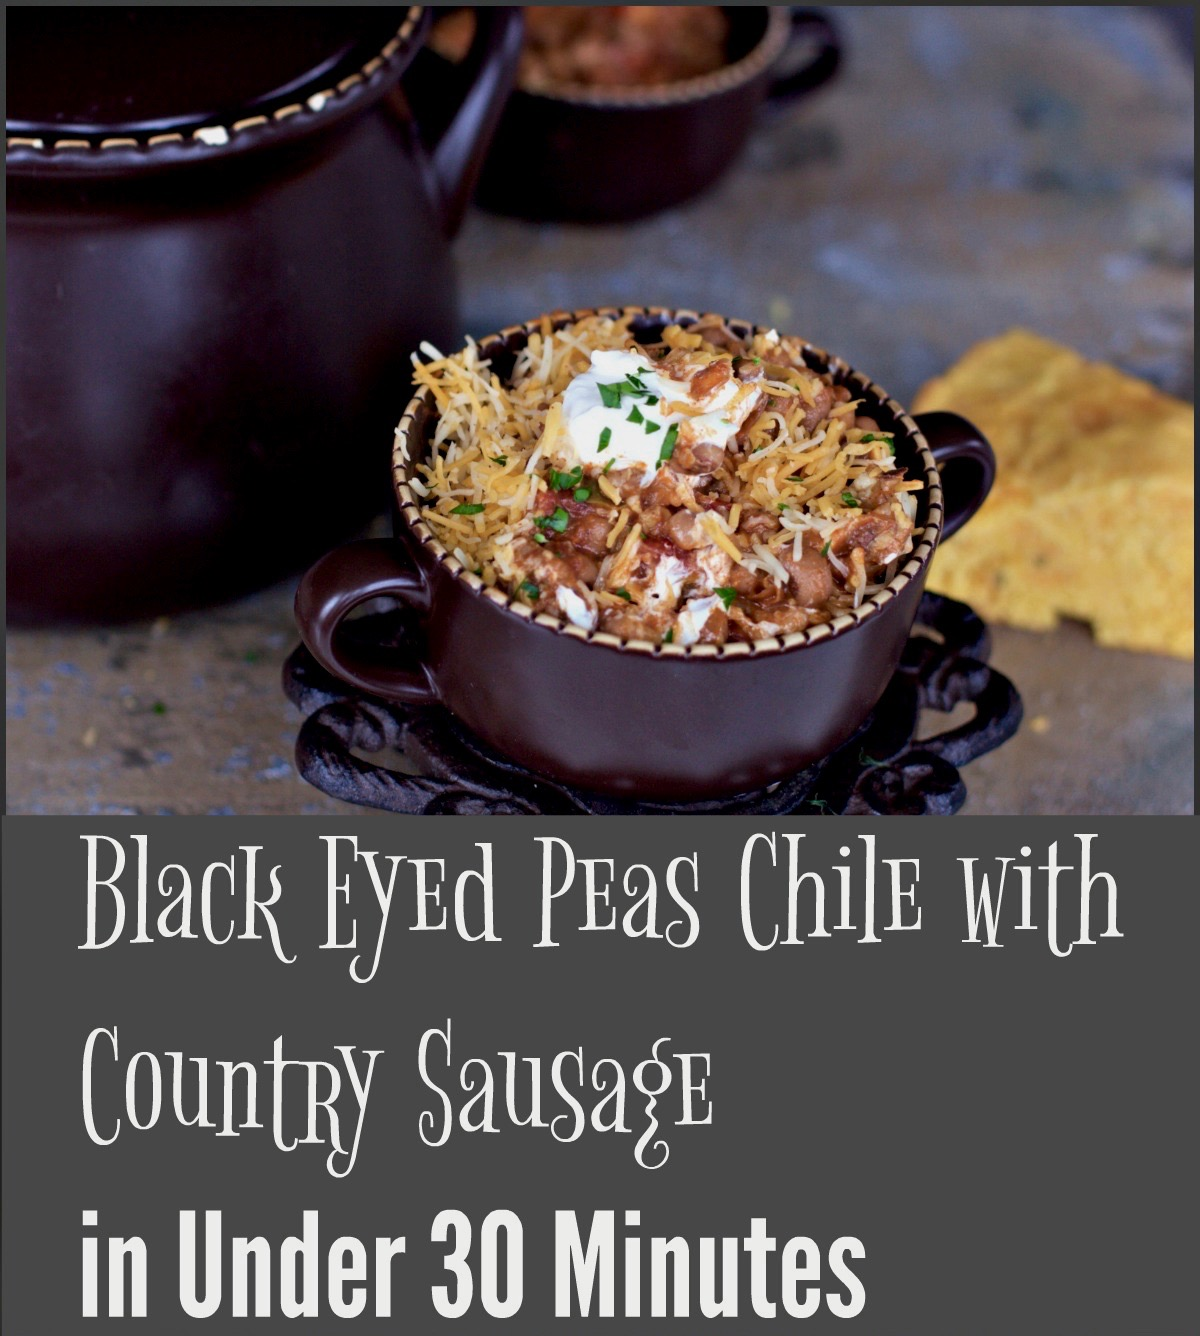 Bean Soup Recipes with Black Eyed Peas and More from Spinach TIger